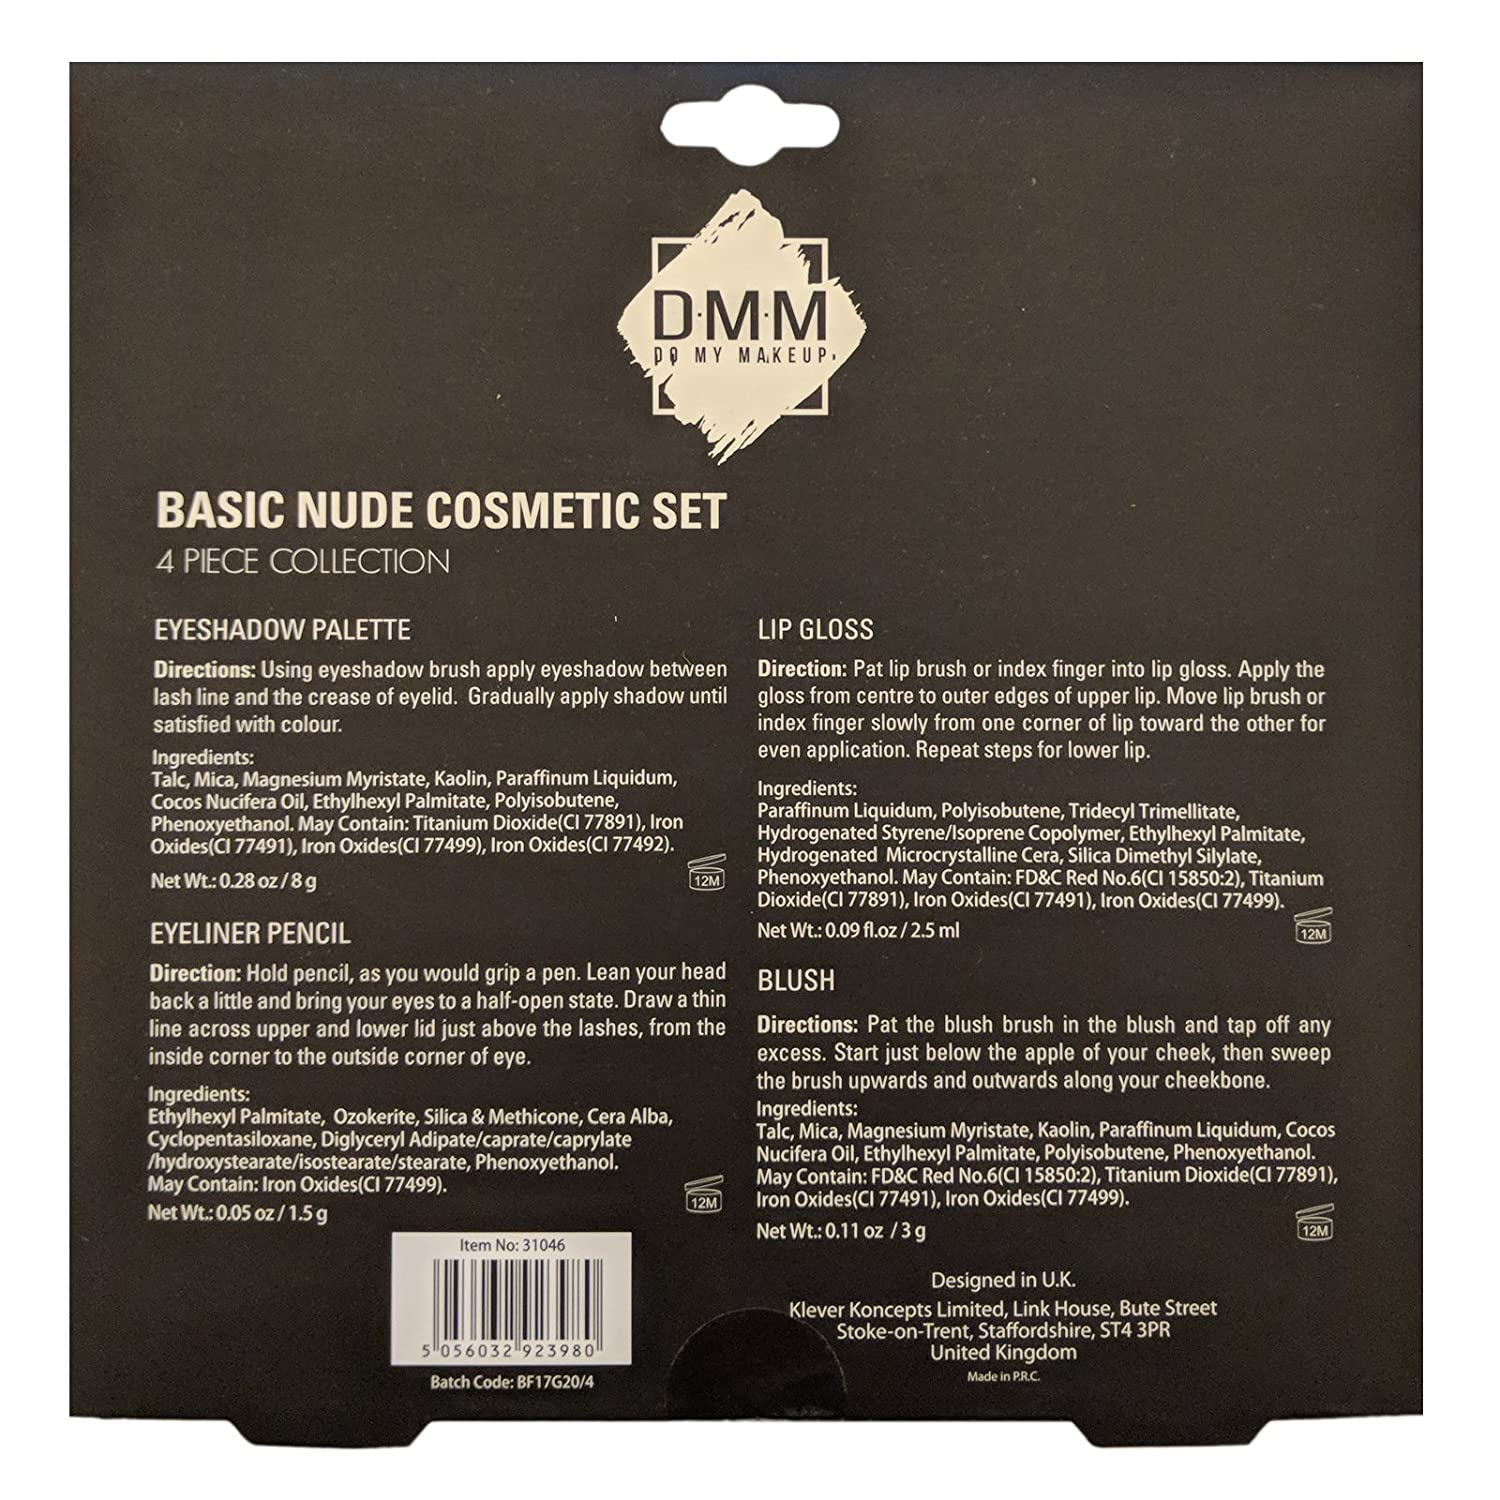 DMM Basic Nude Look Cosmetic Make Up Set Eyeshadow Palette Blush